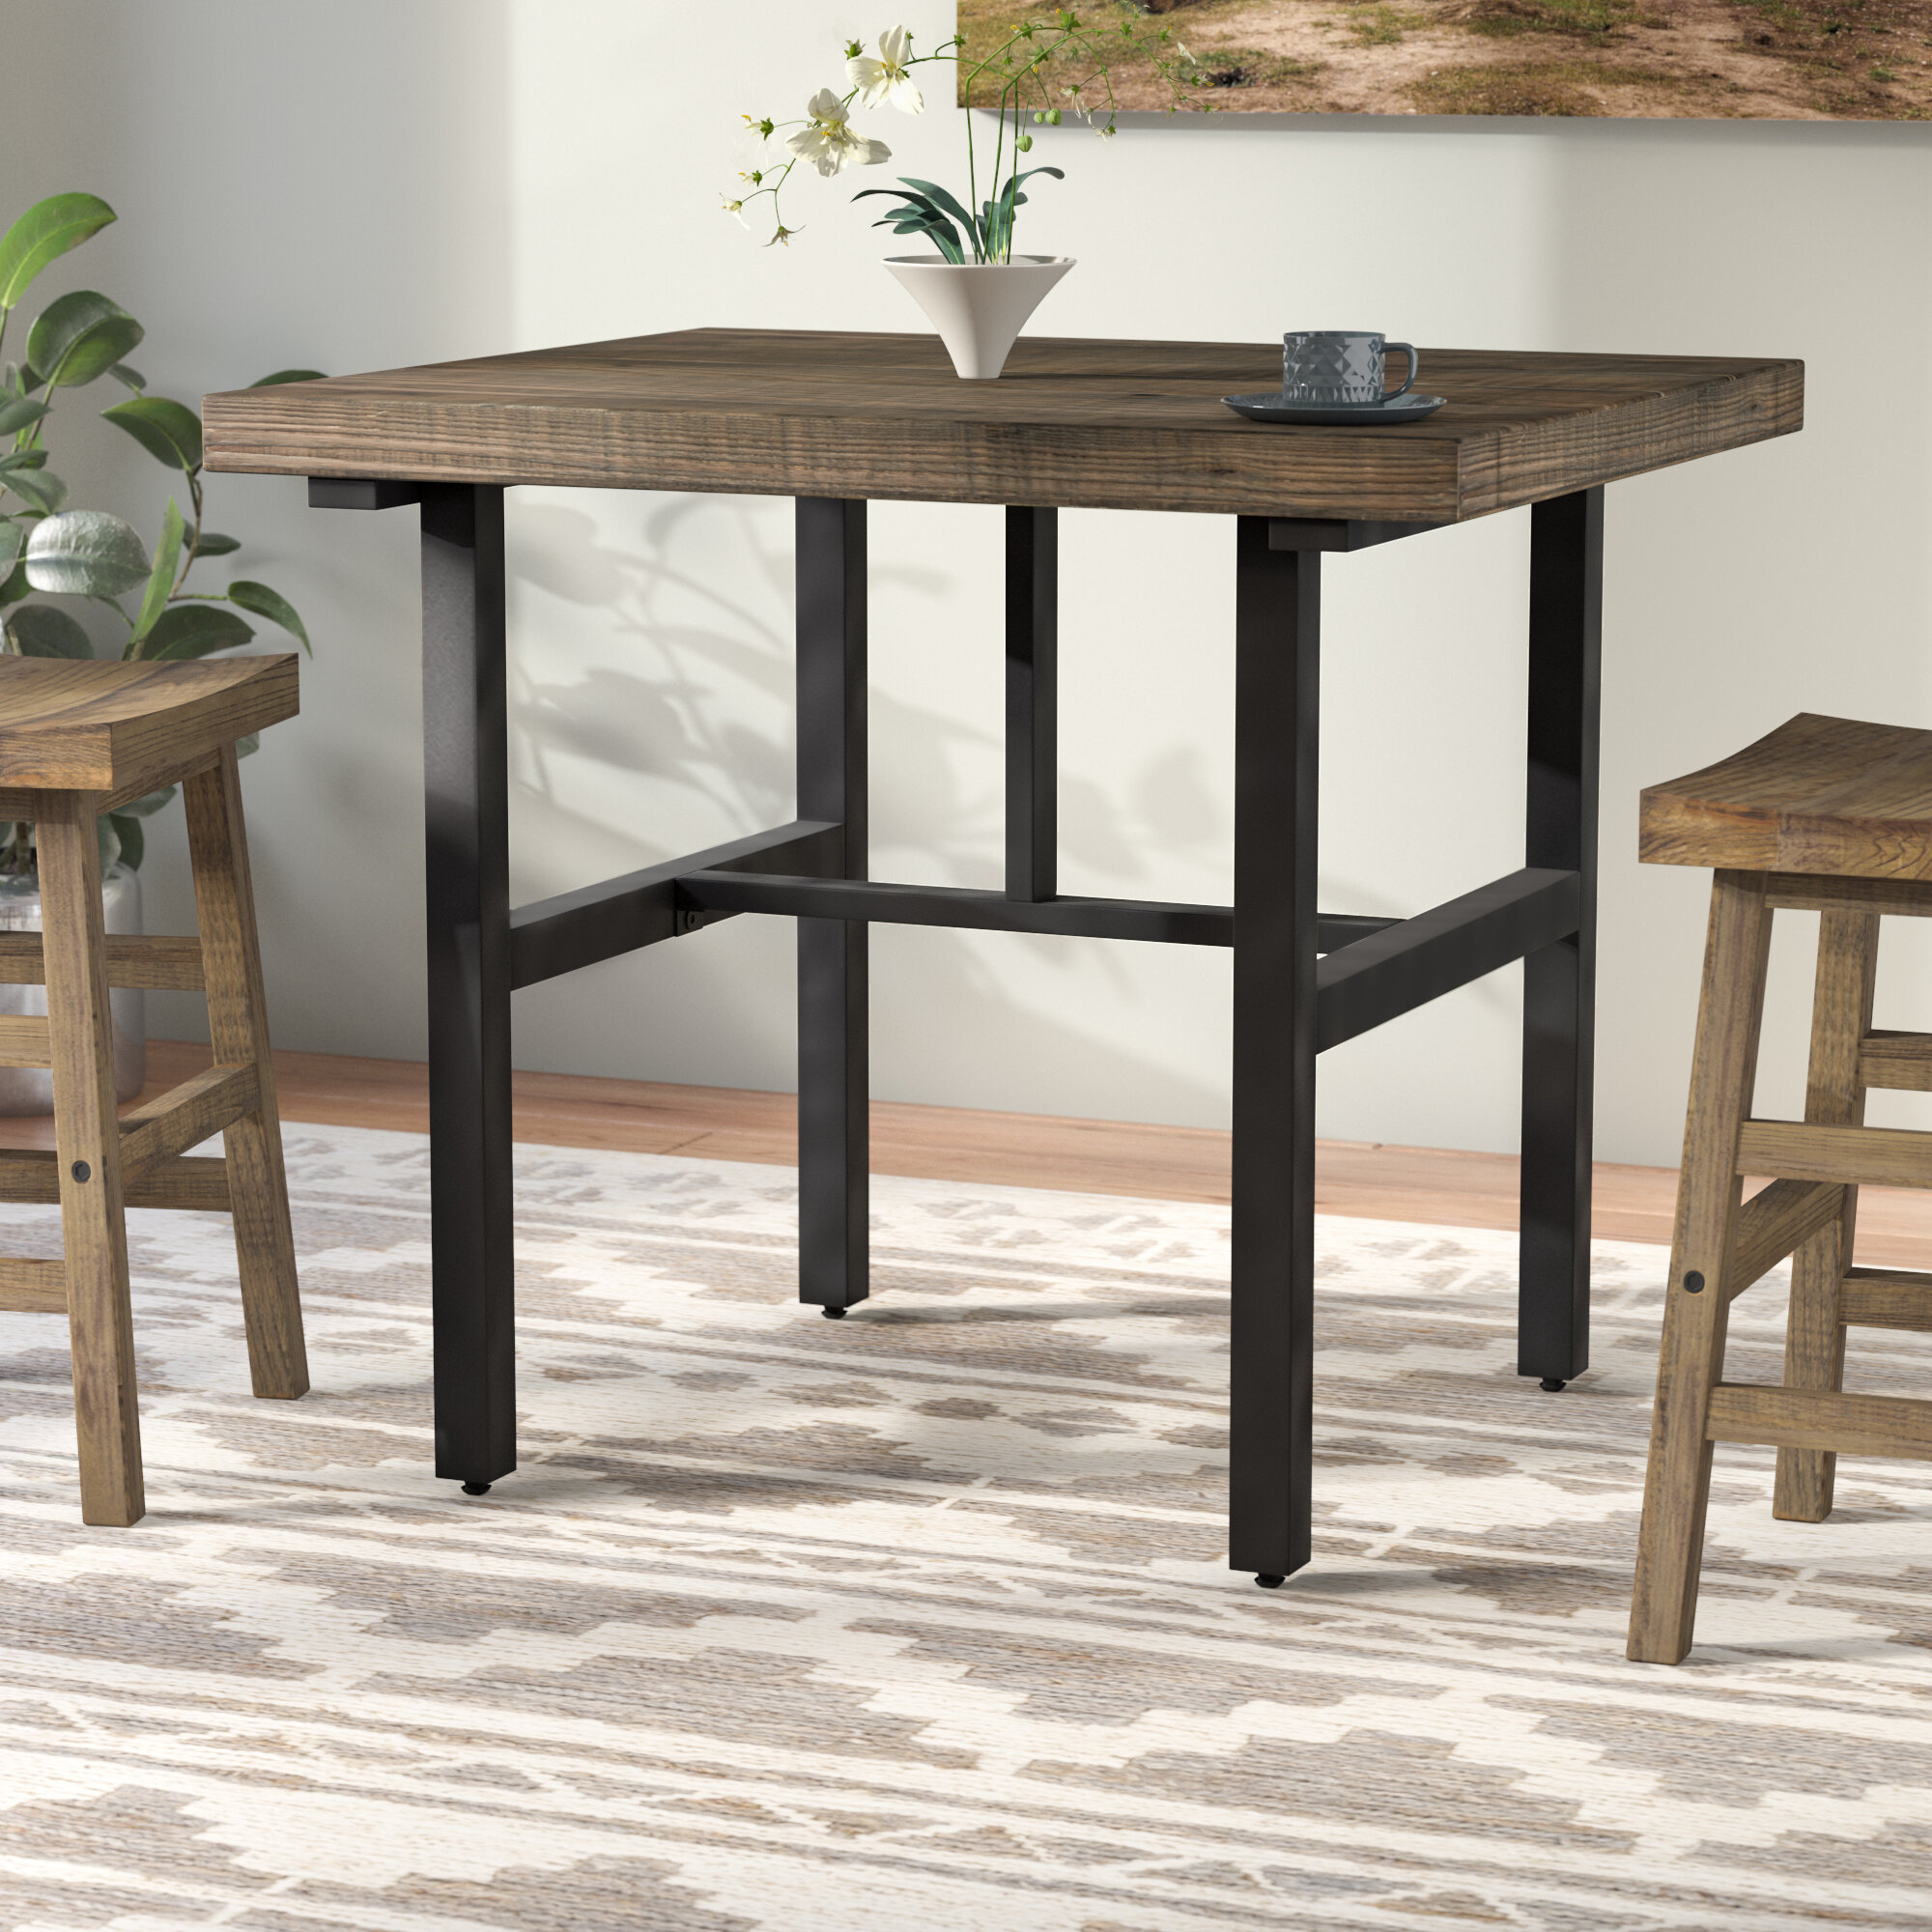 reclaimed residence wood pedestal table products pic dining top kitchen belvedere s interiors new la copy